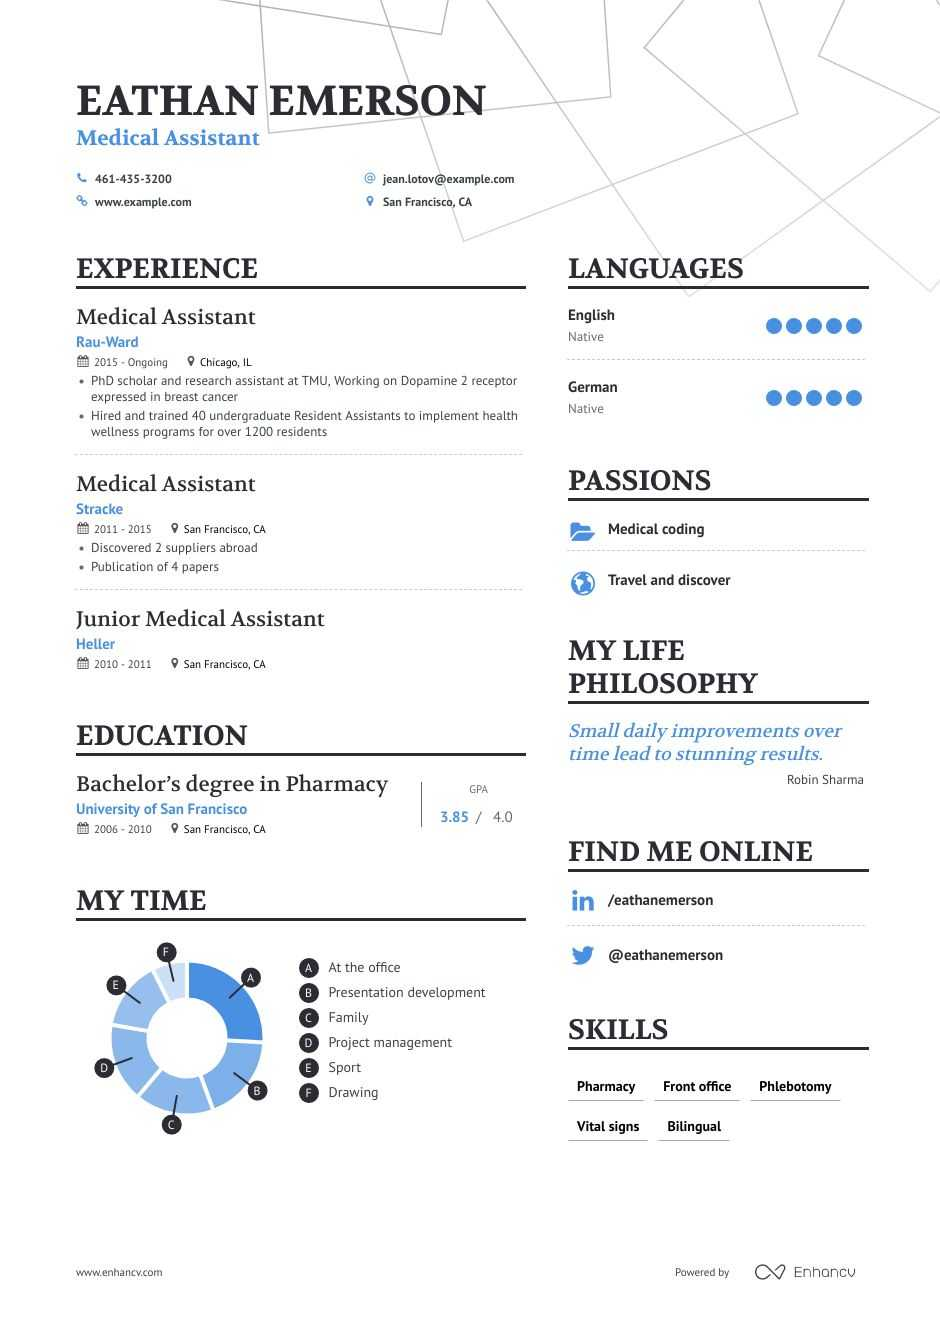 top medical assistant resume examples samples for enhancv keywords healthcare annotated Resume Keywords For Healthcare Resume